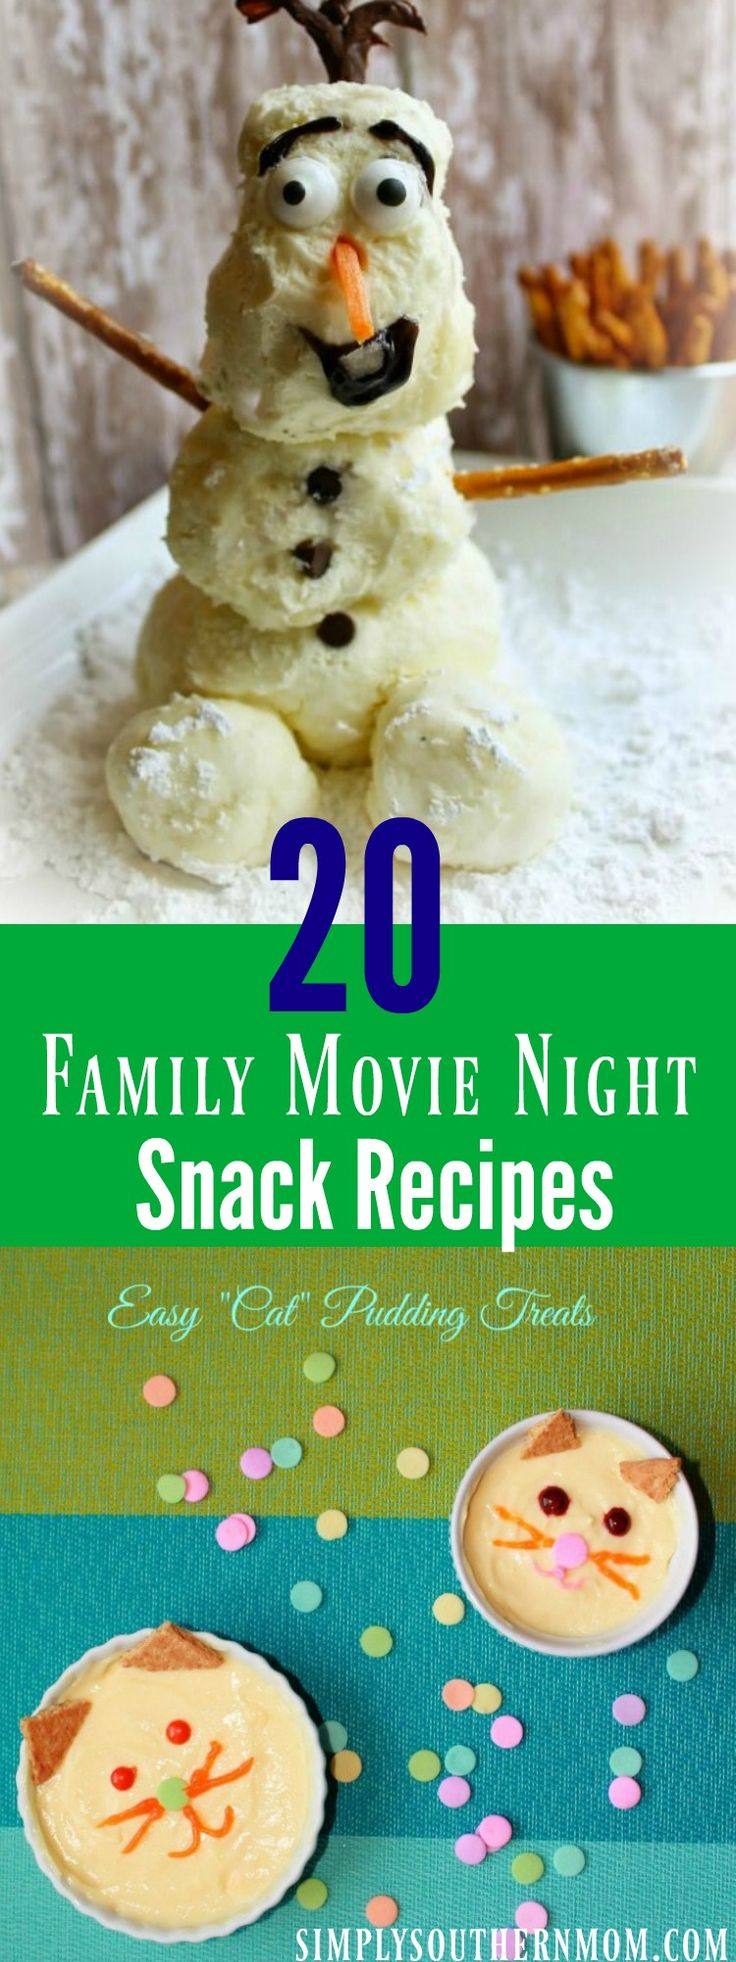 Planning a movie night with the family? Serve any of these 20 cute snacks and you'll please the entire family.